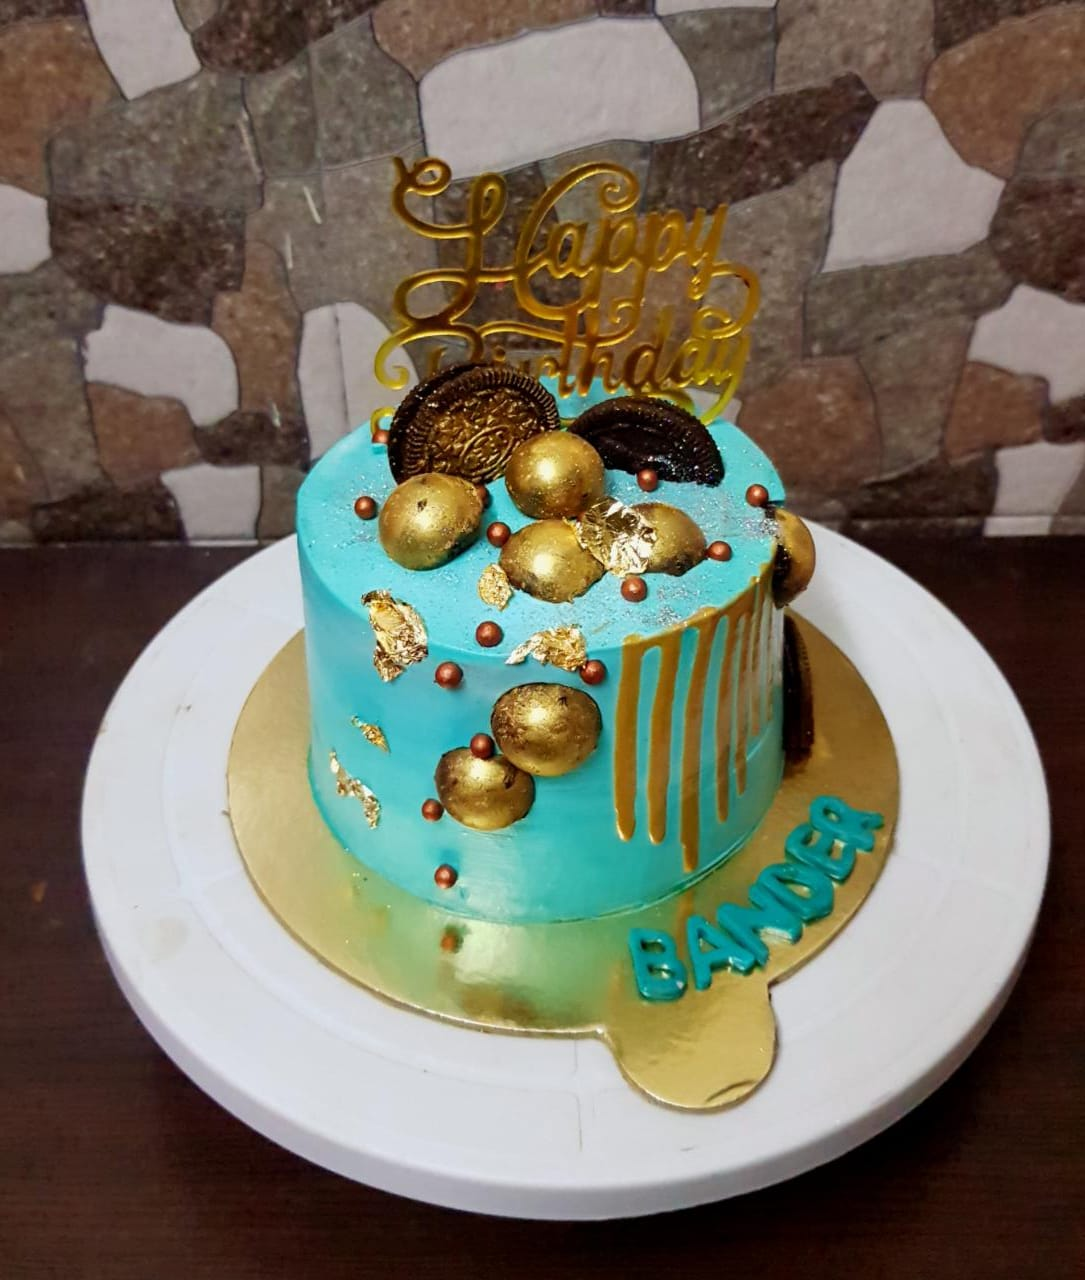 Bestseller signature overloaded Chocolate Cake Designs, Images, Price Near Me